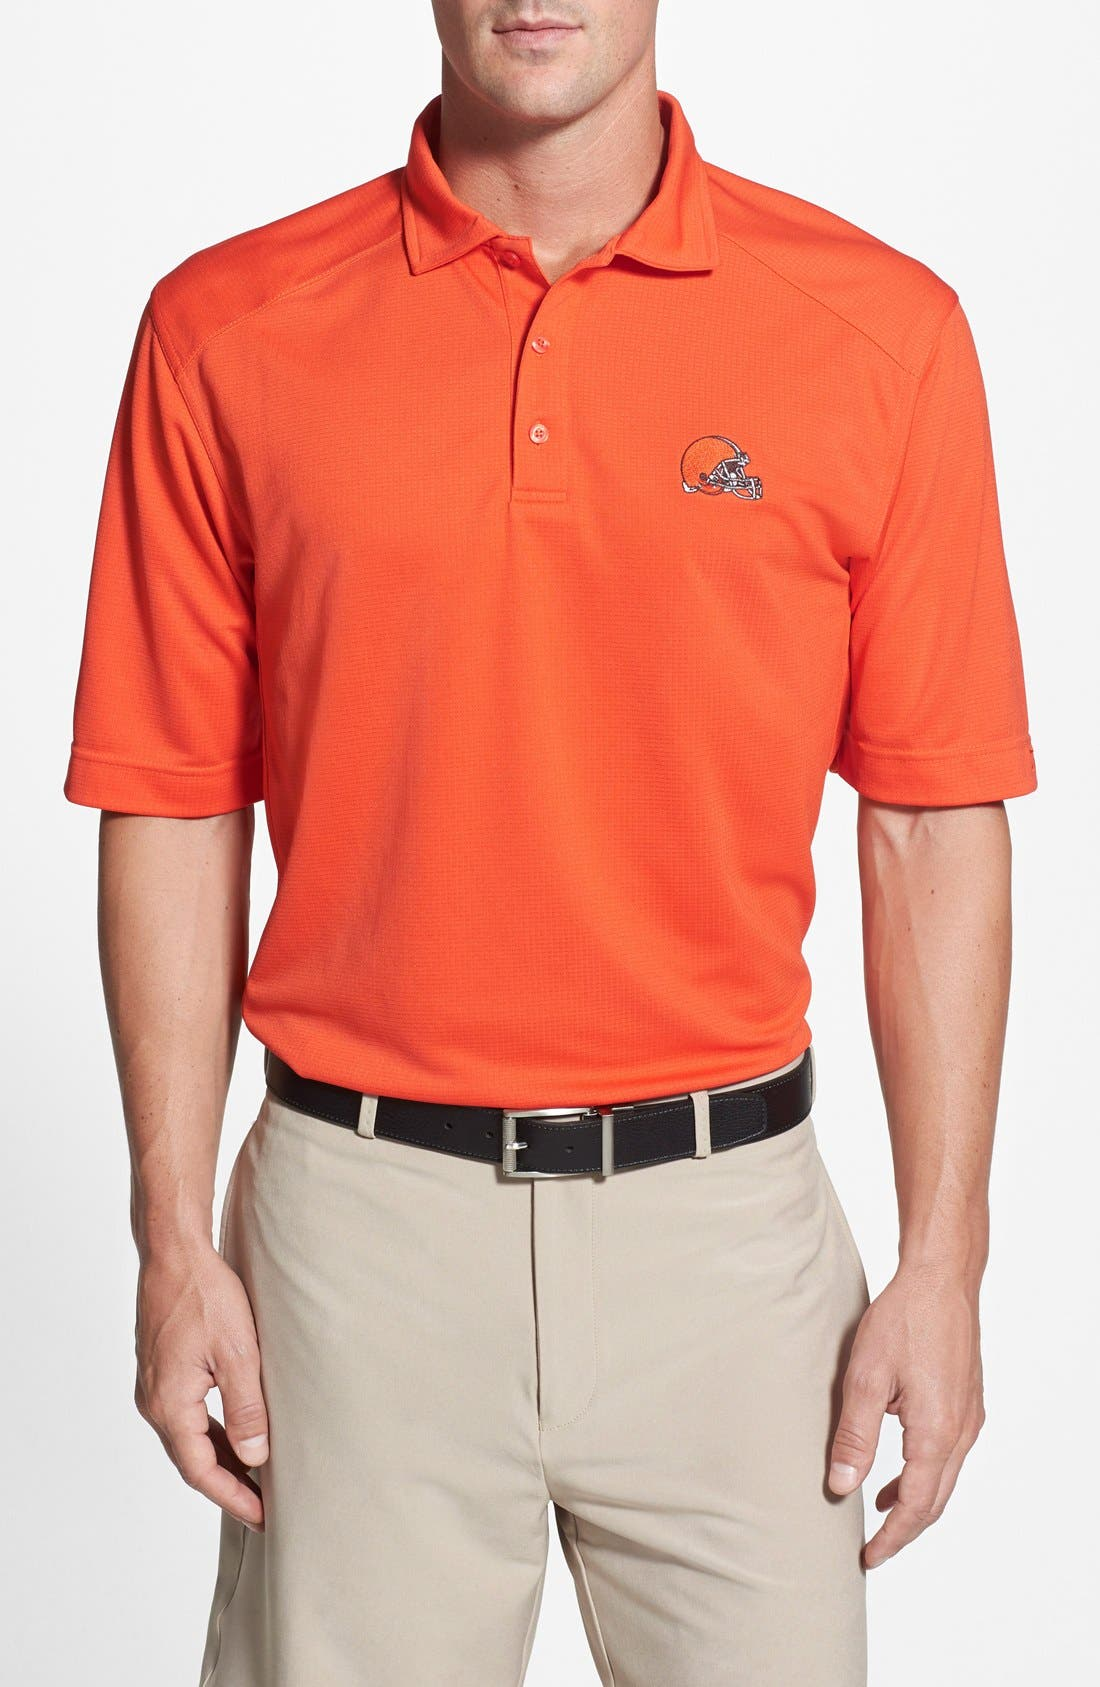 Cleveland Browns - Genre DryTec Moisture Wicking Polo,                         Main,                         color,